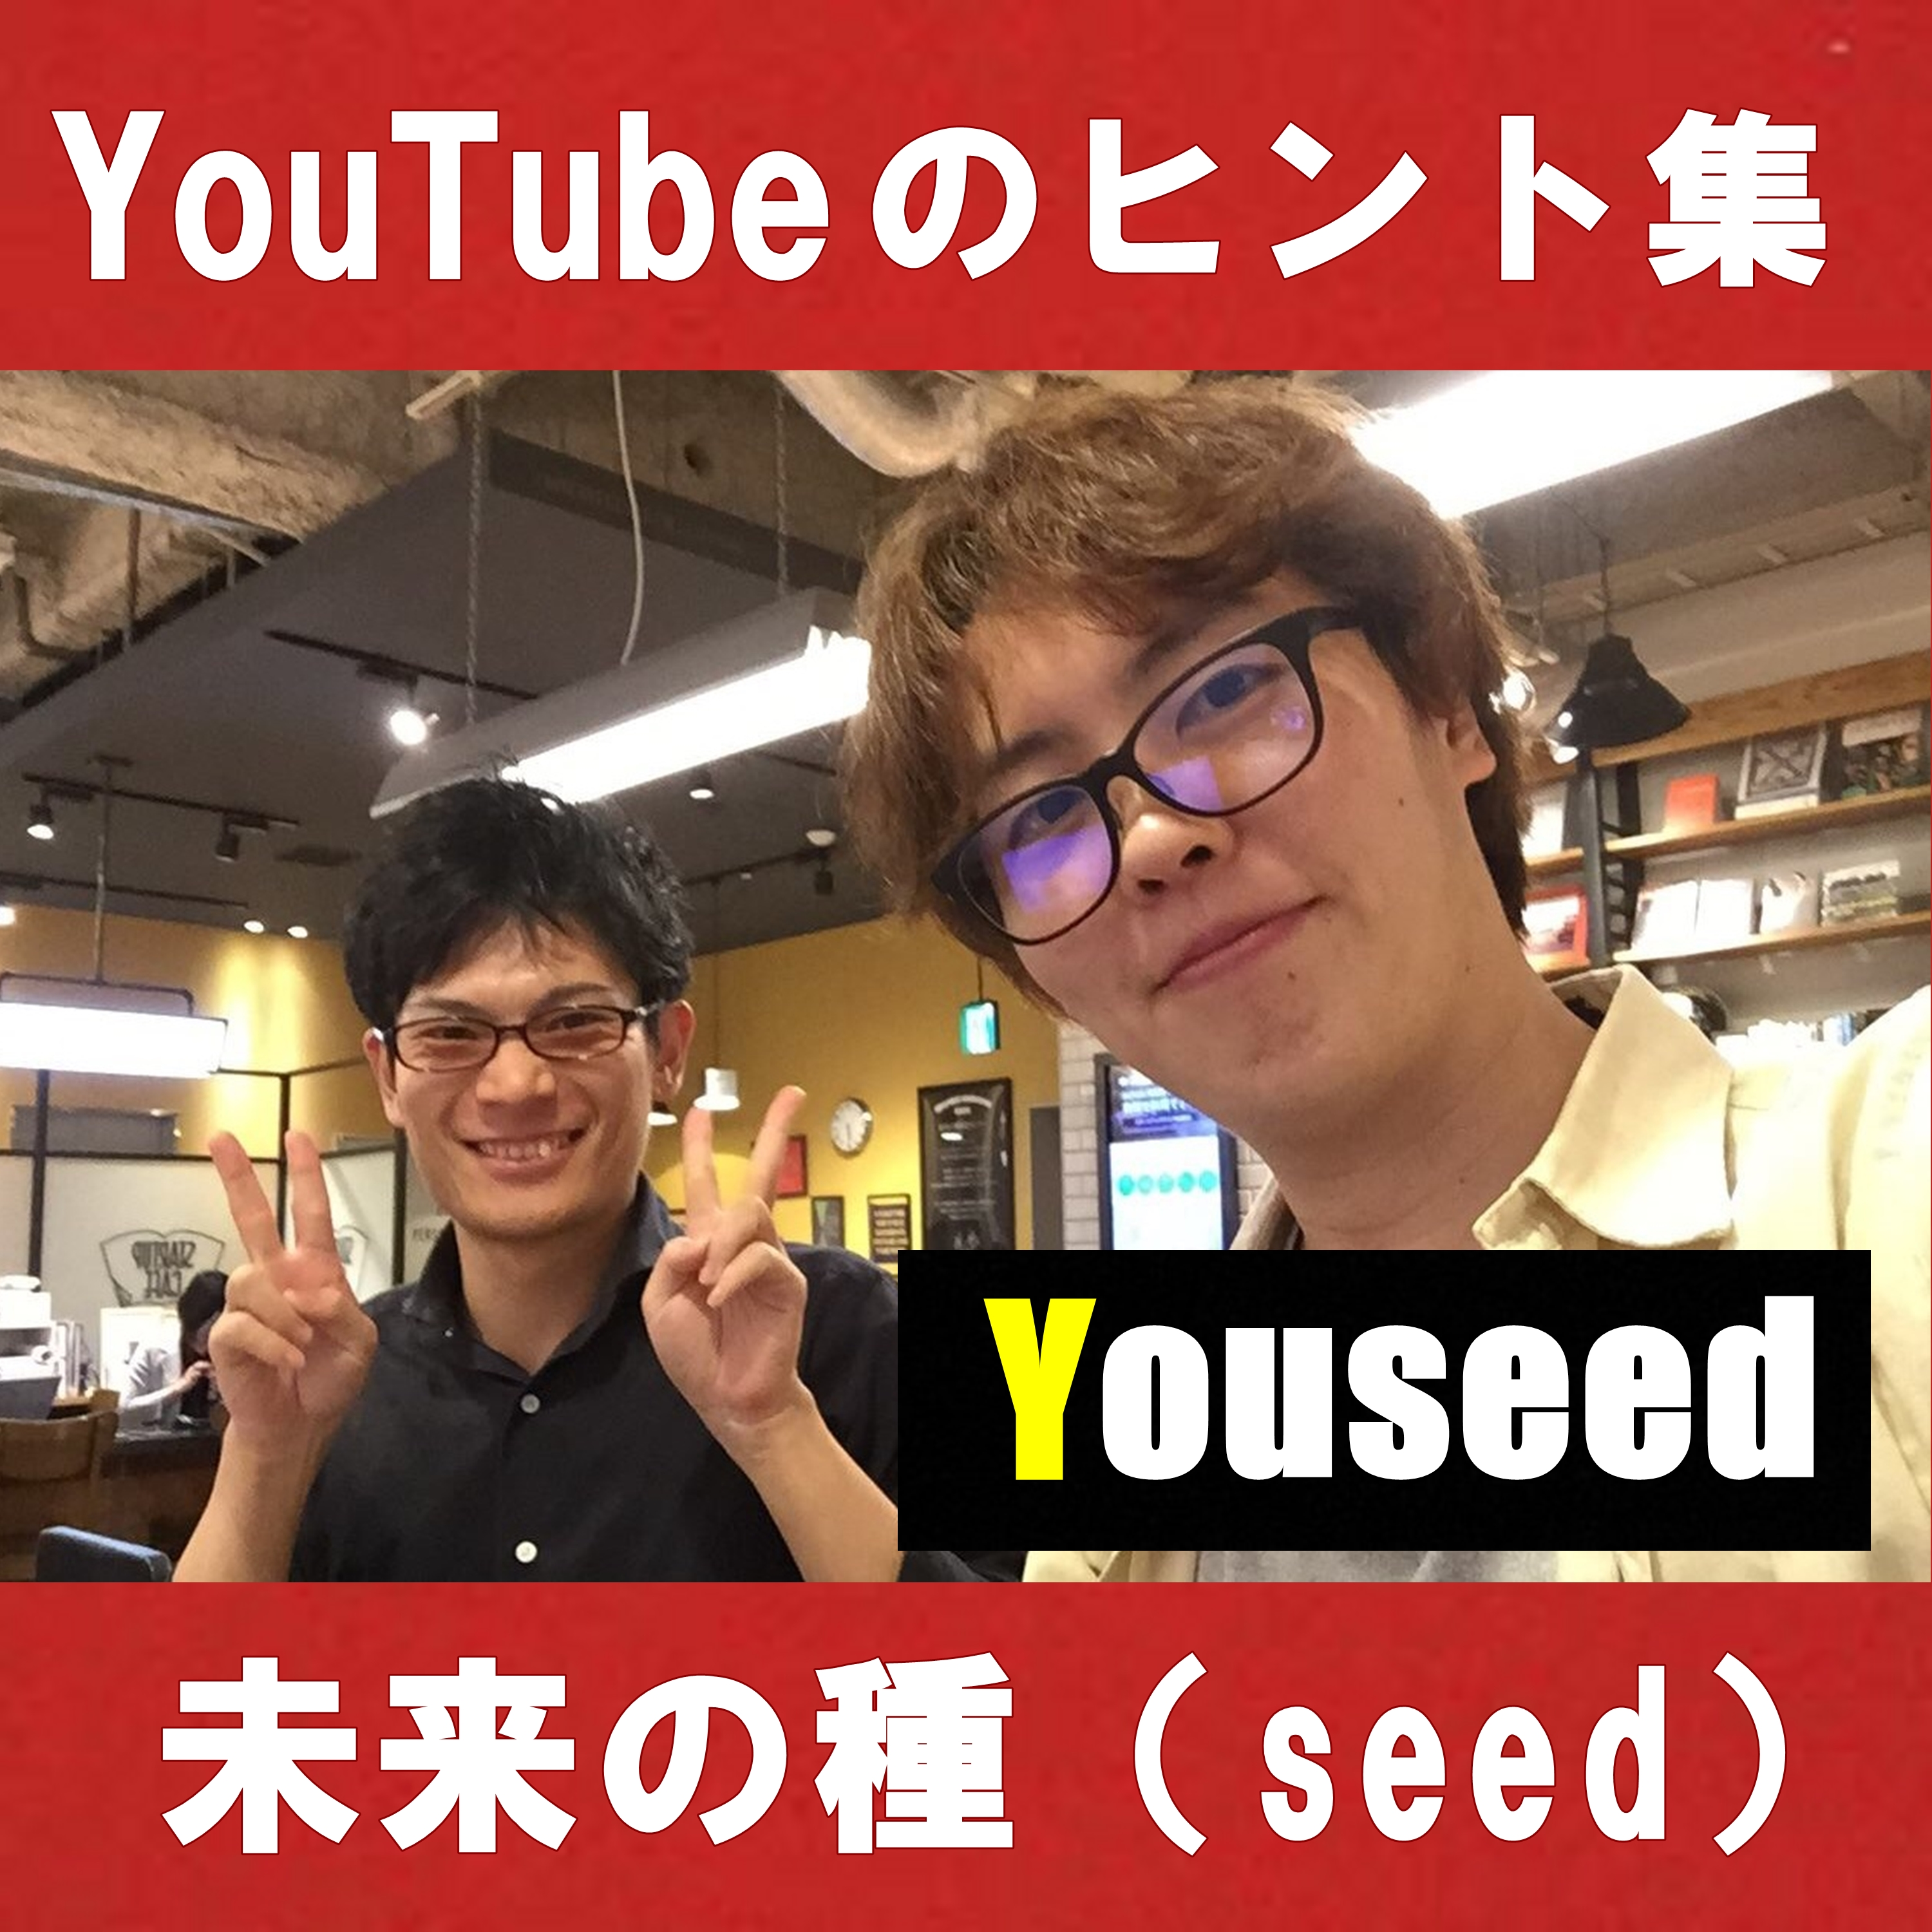 Youseed|副収入を作りたい人向けのYouTubeトーク番組